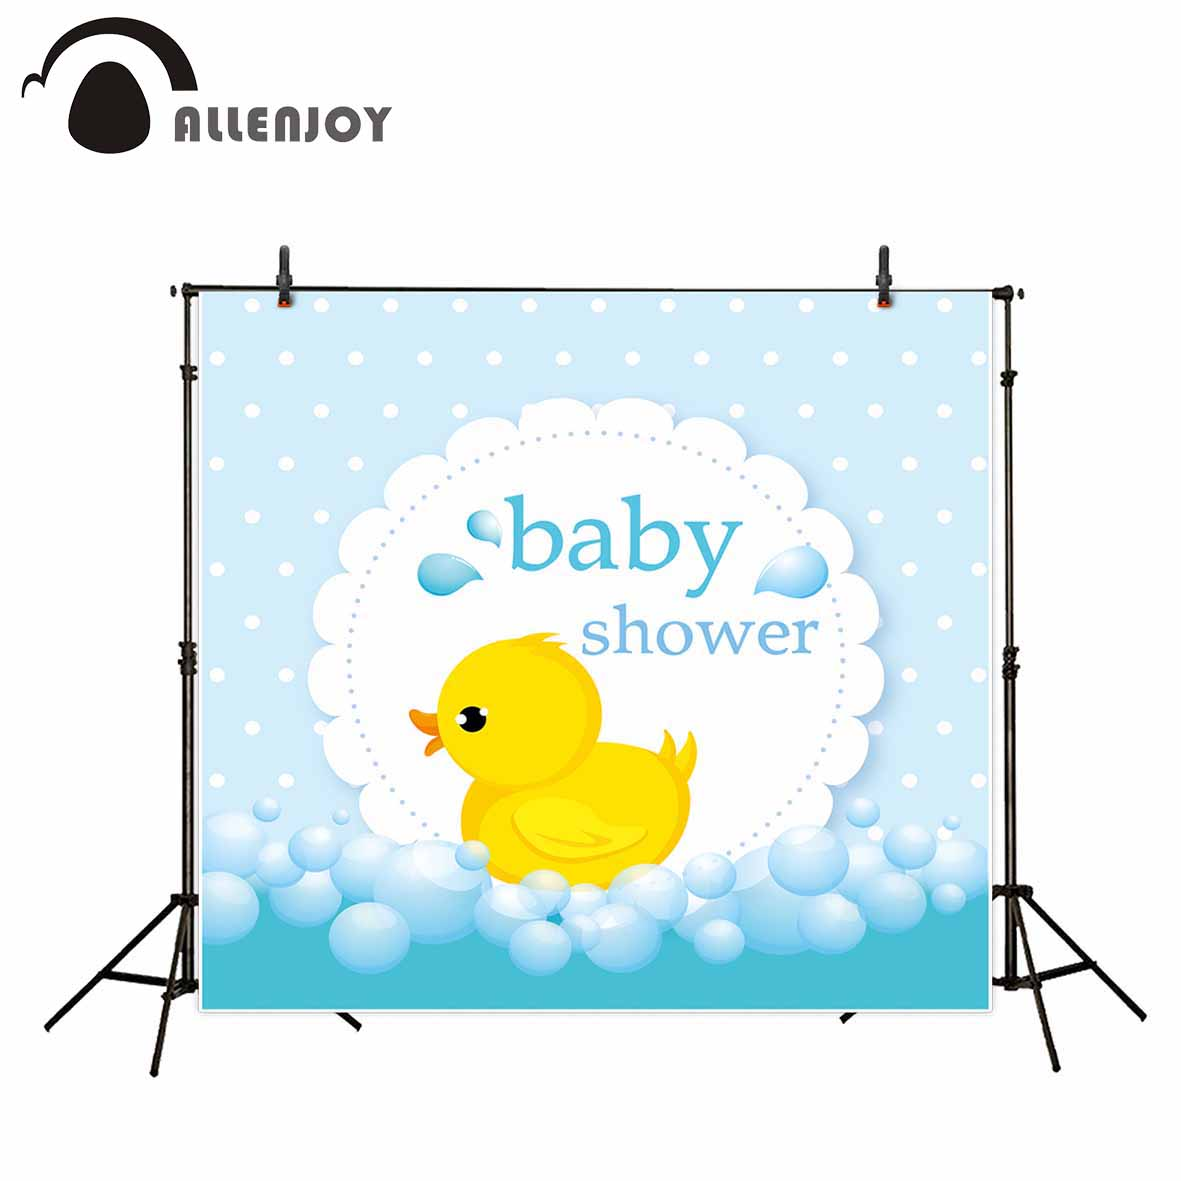 Allenjoy childern yellow cartoon duck photo backdrops dots blue baby shower cute custom background baby portrait photography photography background baby shower step and repeat allenjoy backdrop custom made any size any style